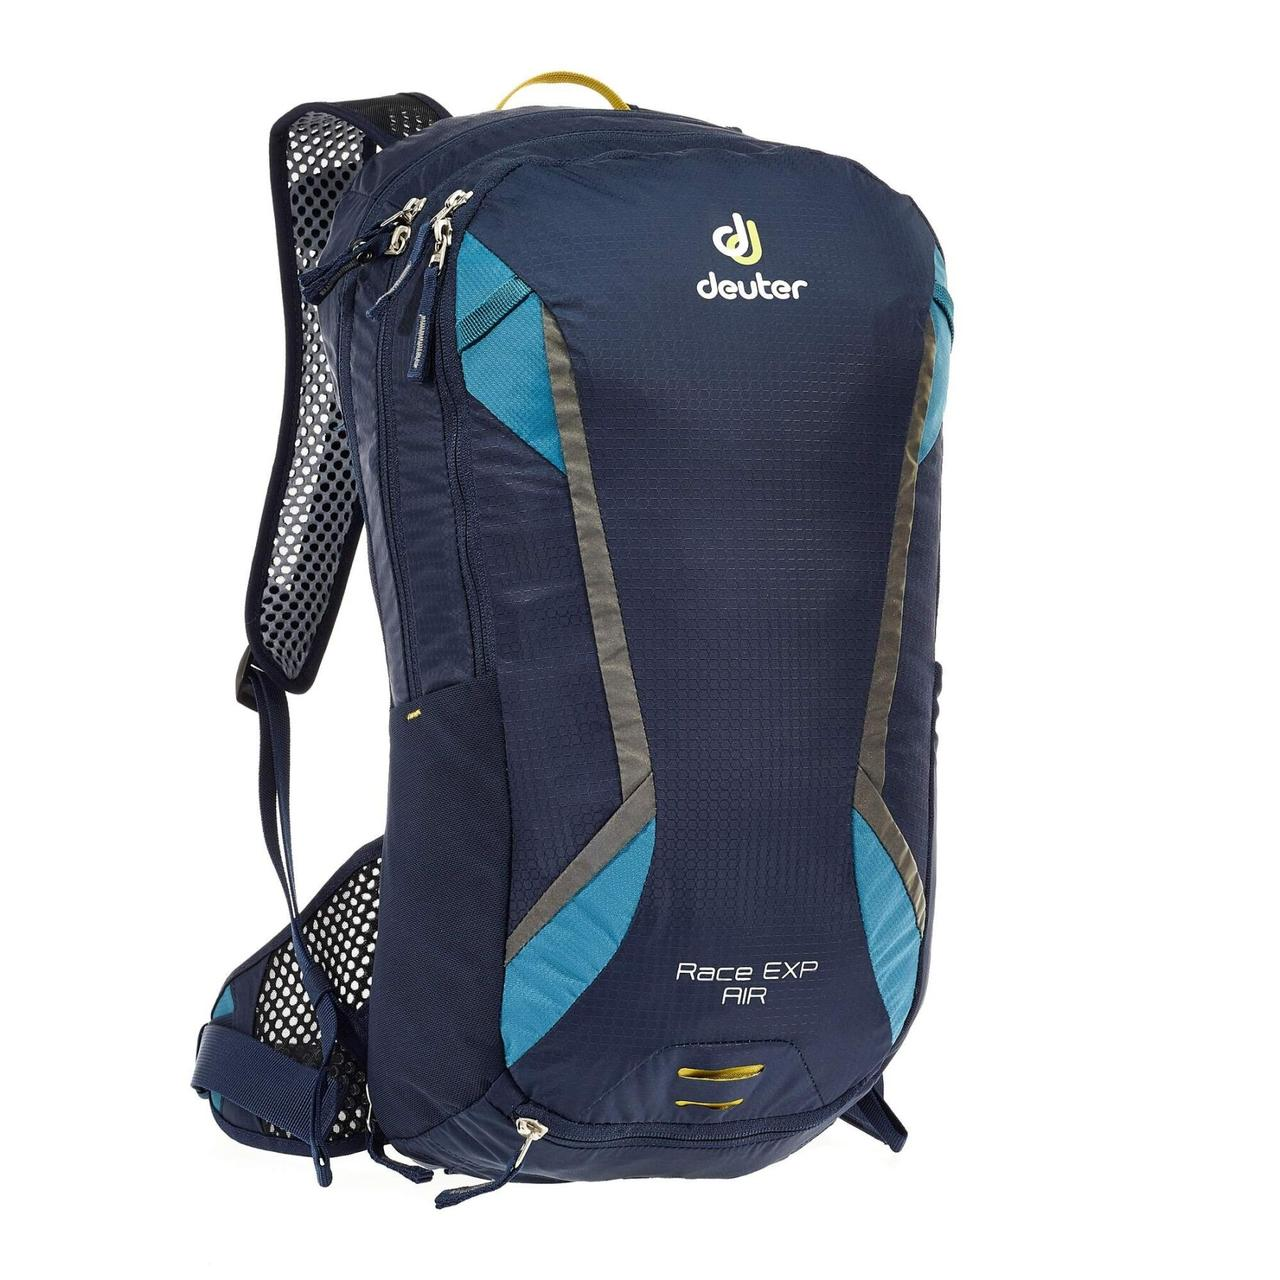 Велорюкзак Deuter Race EXP Air 14+3 navy-denim (3207318 3397)